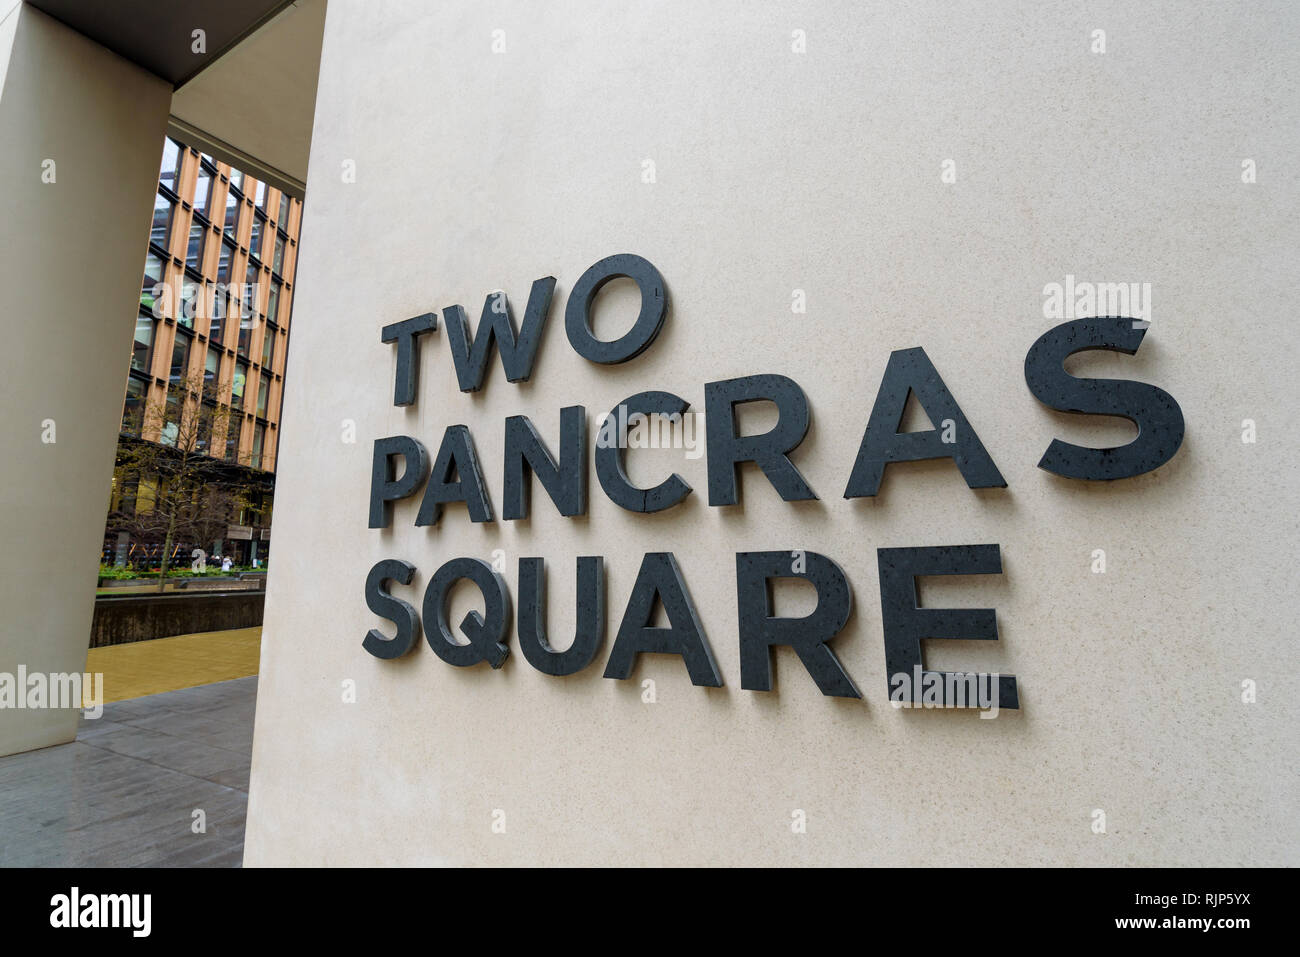 a9c174e943e Pancras Square Stock Photos   Pancras Square Stock Images - Page 2 ...